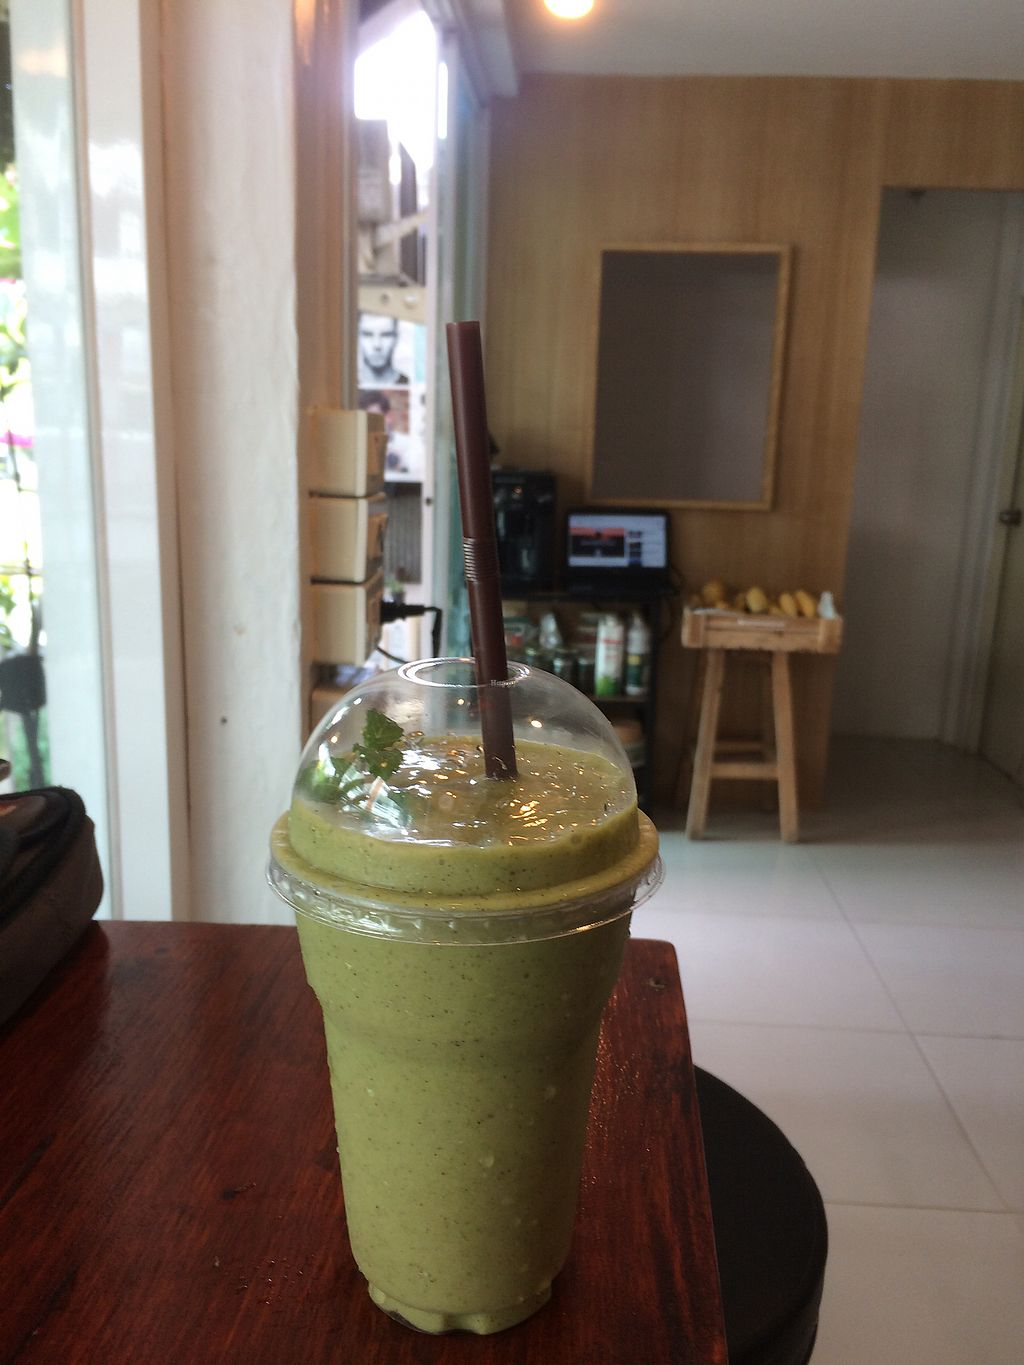 "Photo of Starfruit Smoothie  by <a href=""/members/profile/nicohahn"">nicohahn</a> <br/>Green smoothie  <br/> September 11, 2017  - <a href='/contact/abuse/image/97418/303180'>Report</a>"